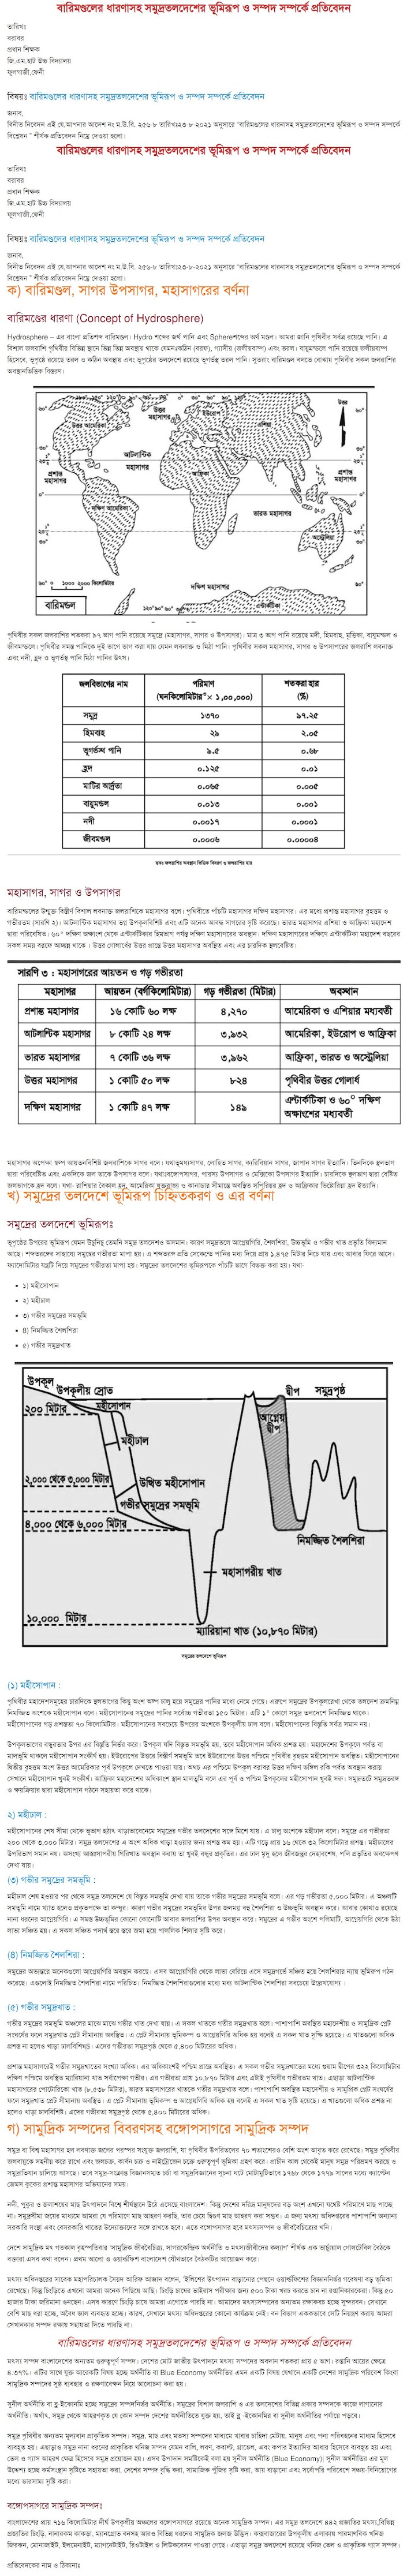 SSC Geography Assignment Answer 2021 6th Week